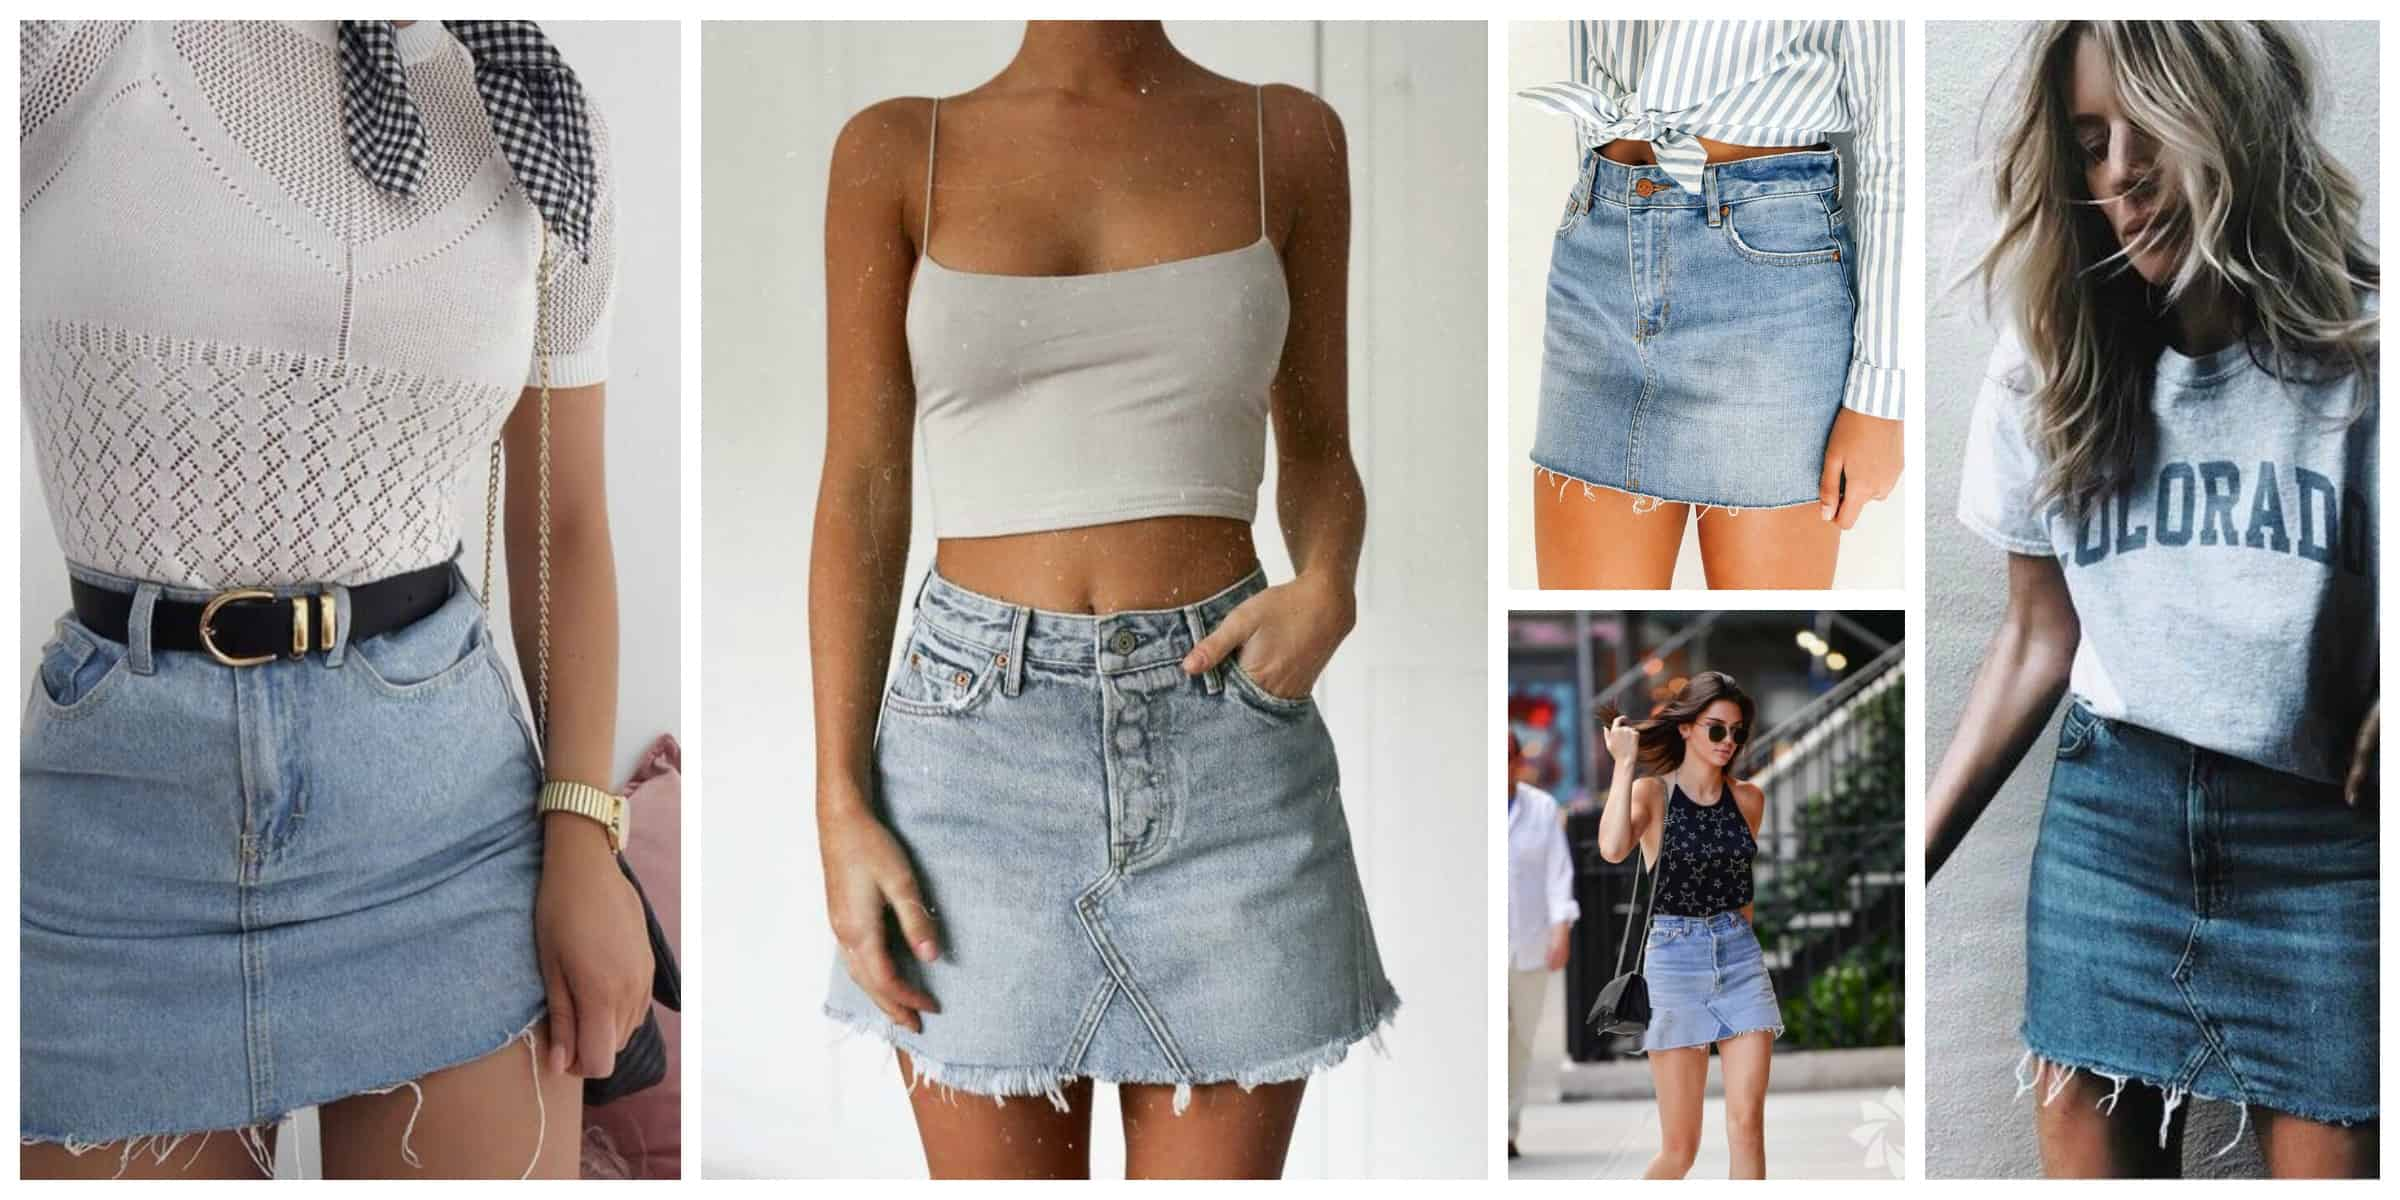 9d4005290c6dc Why it s okay to wear the denim skirt in 2017 if you re not a teen anymore